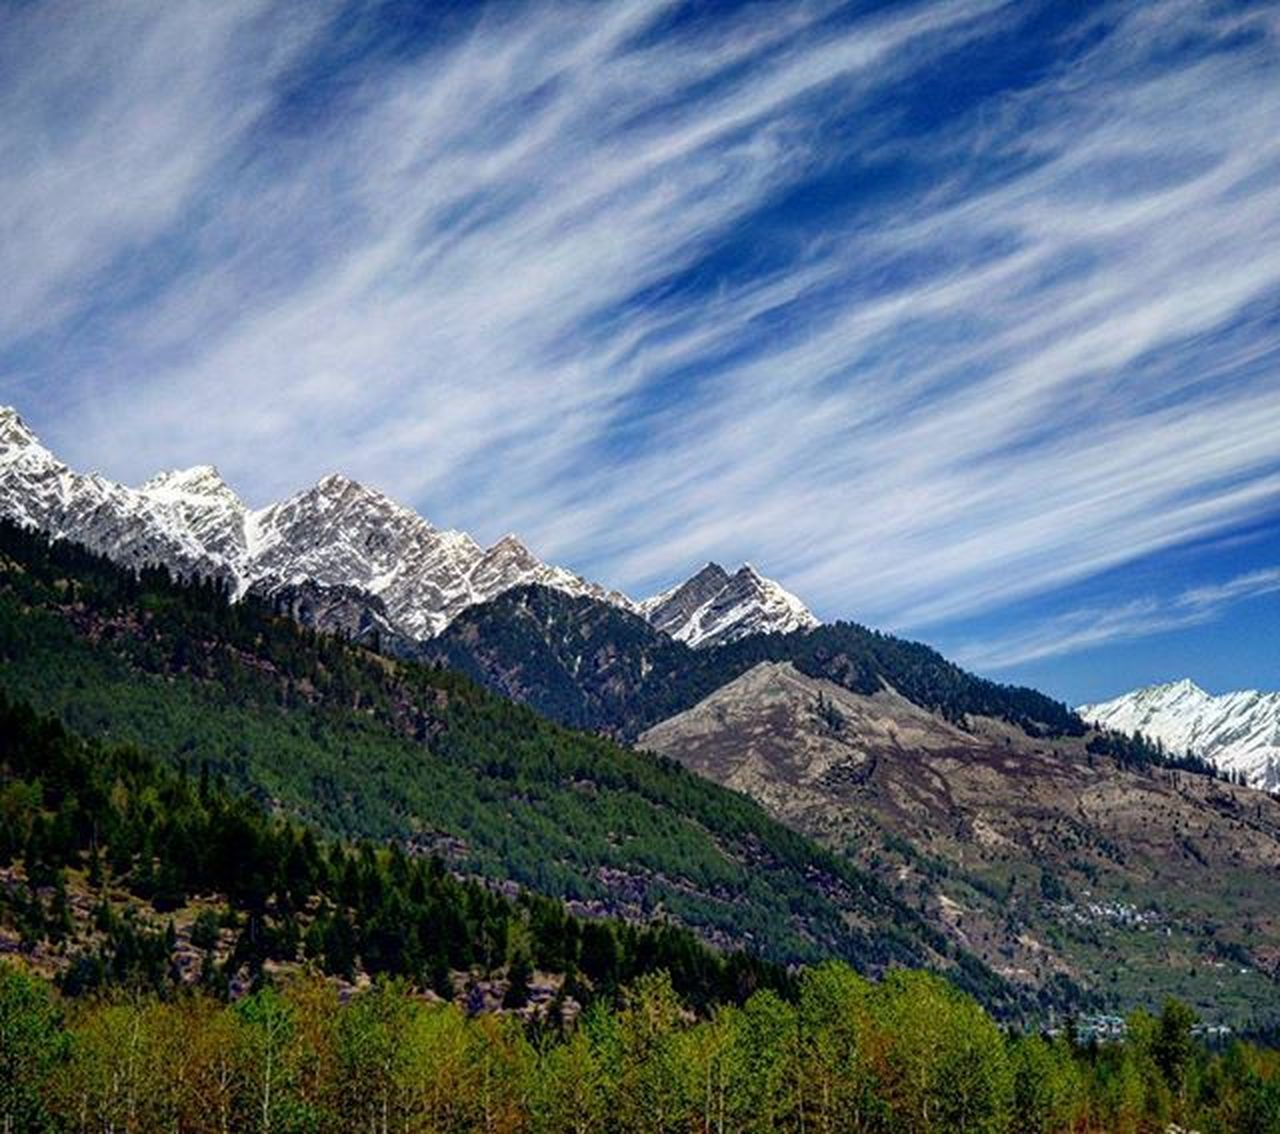 mountain, landscape, scenics, nature, mountain range, beauty in nature, sky, tranquil scene, cloud - sky, no people, outdoors, tranquility, day, snow, tree